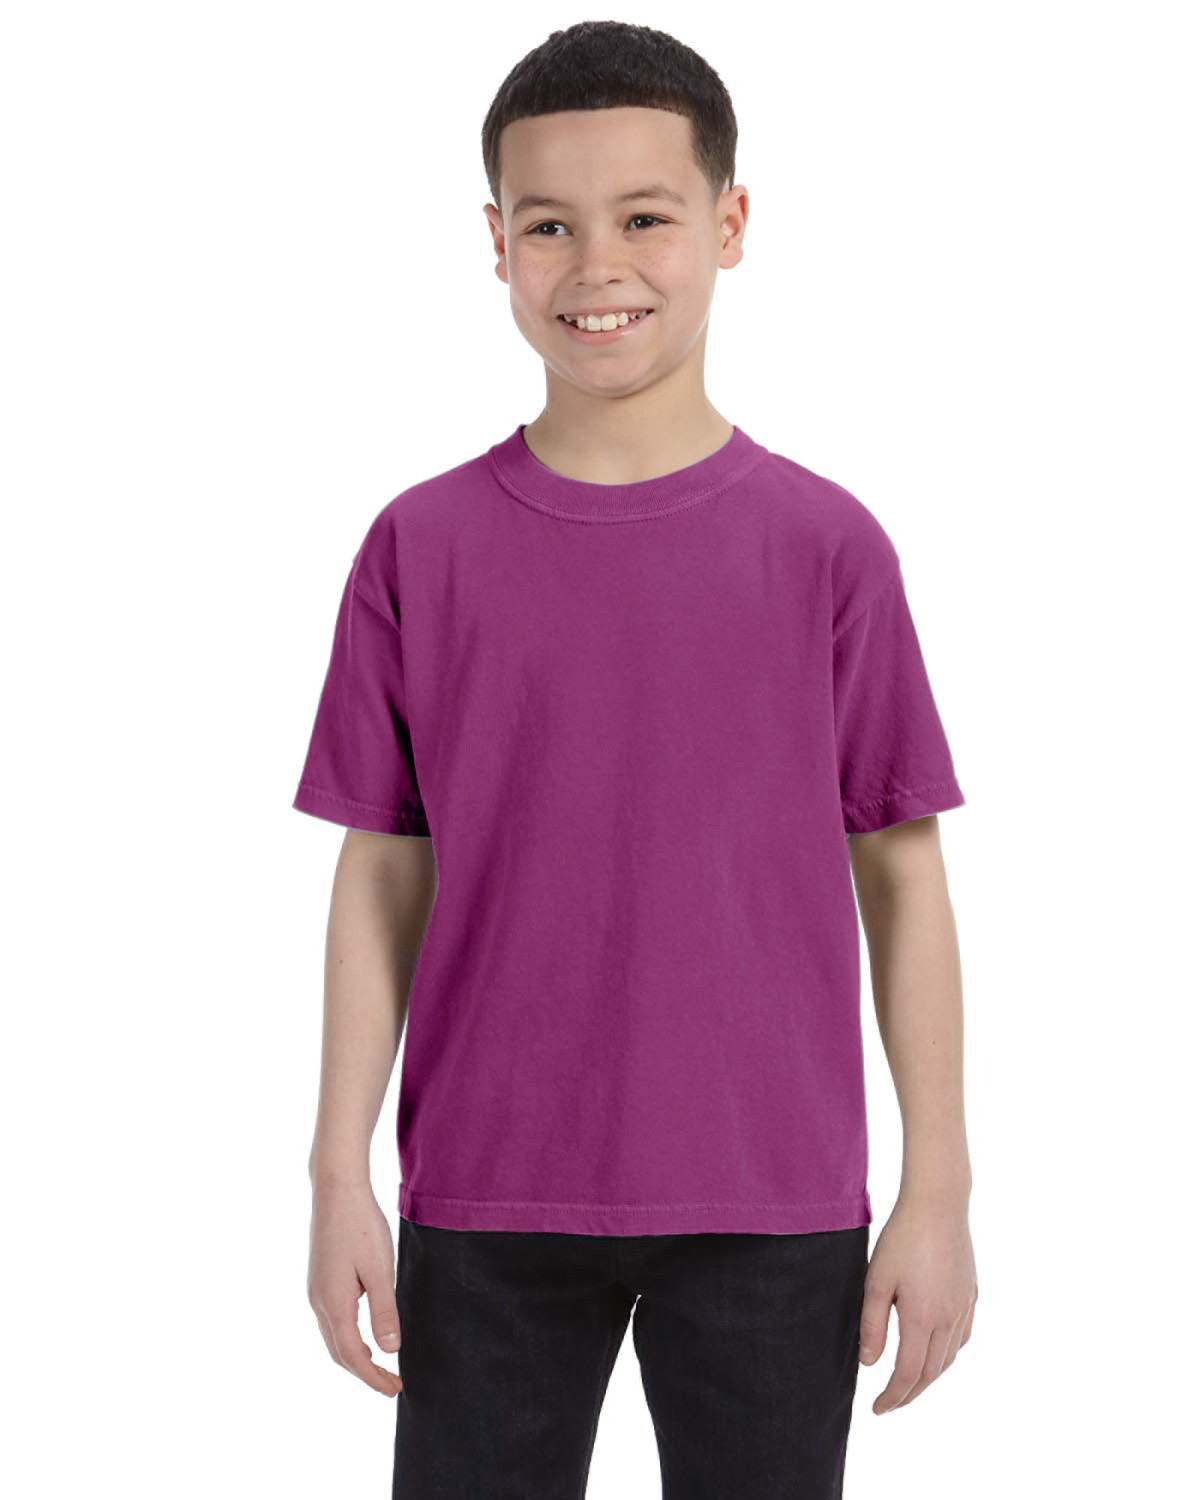 C9018 Comfort Colors BOYSENBERRY